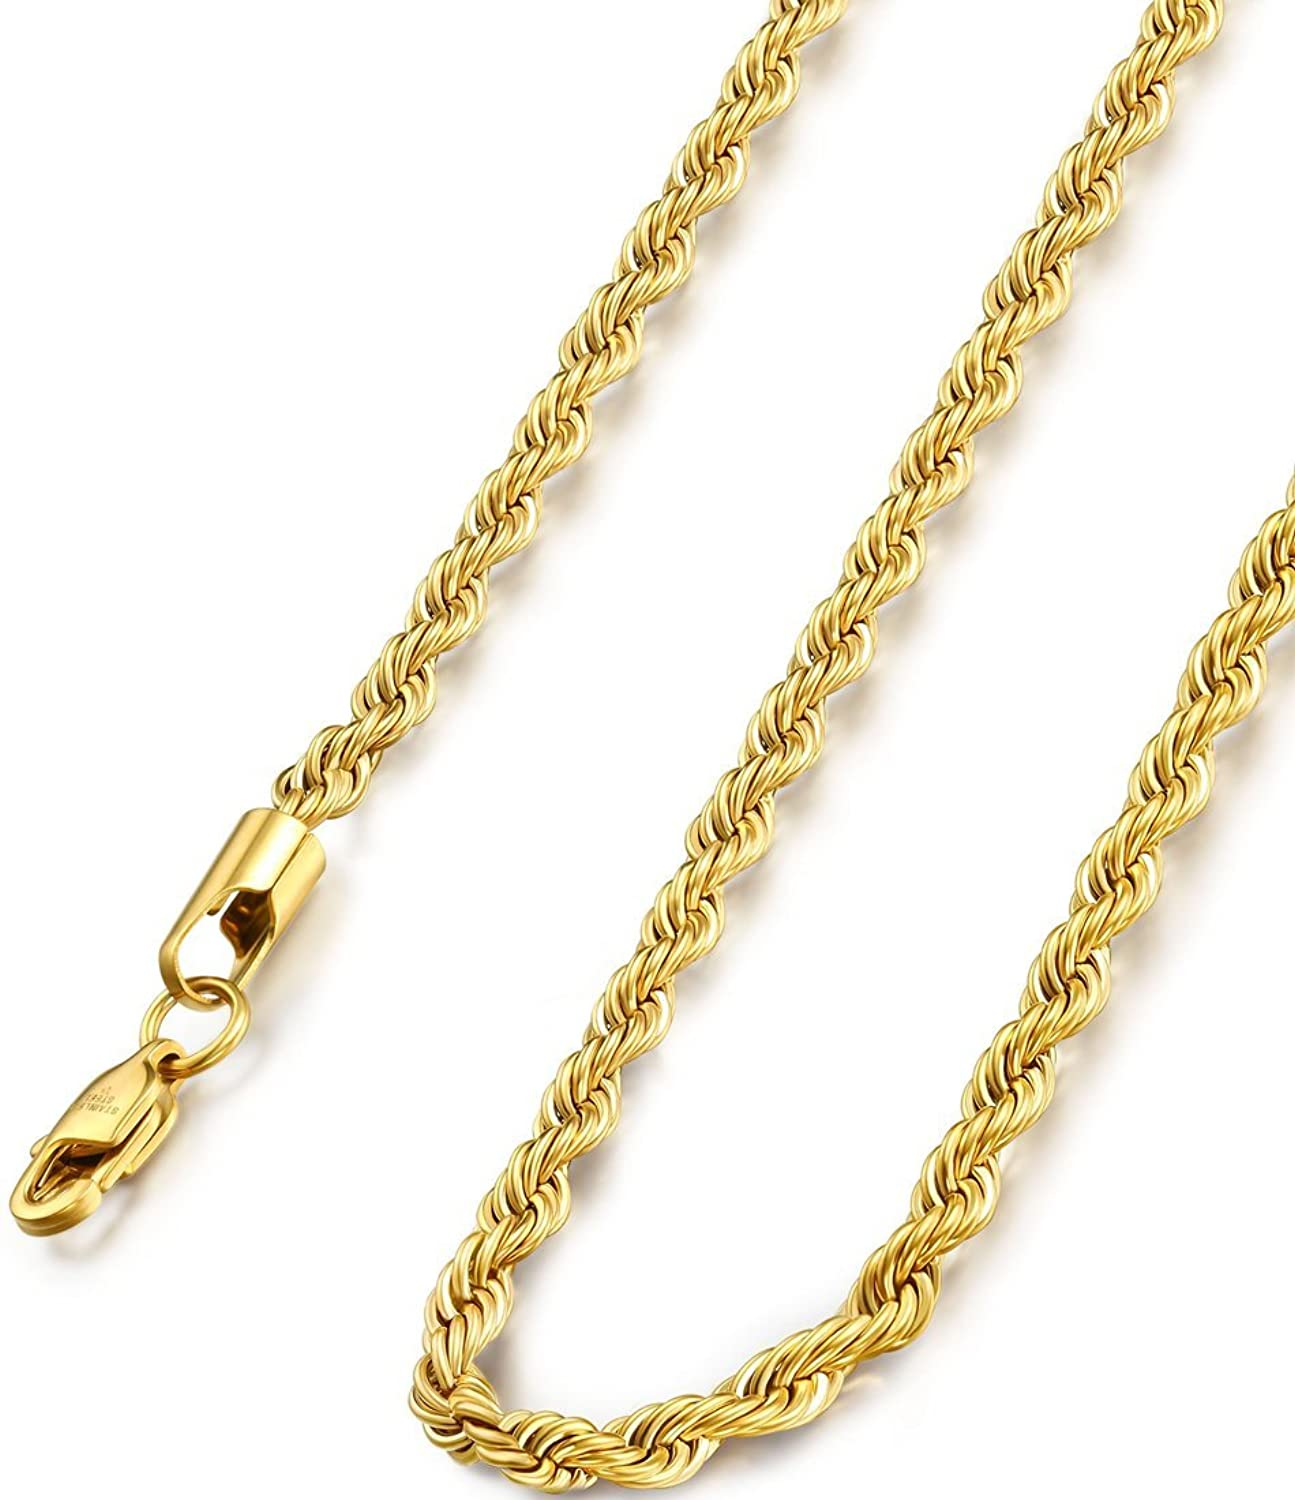 twisted rope large gold chains boho necklace gems products coast chain gfrr filled reverse gulf